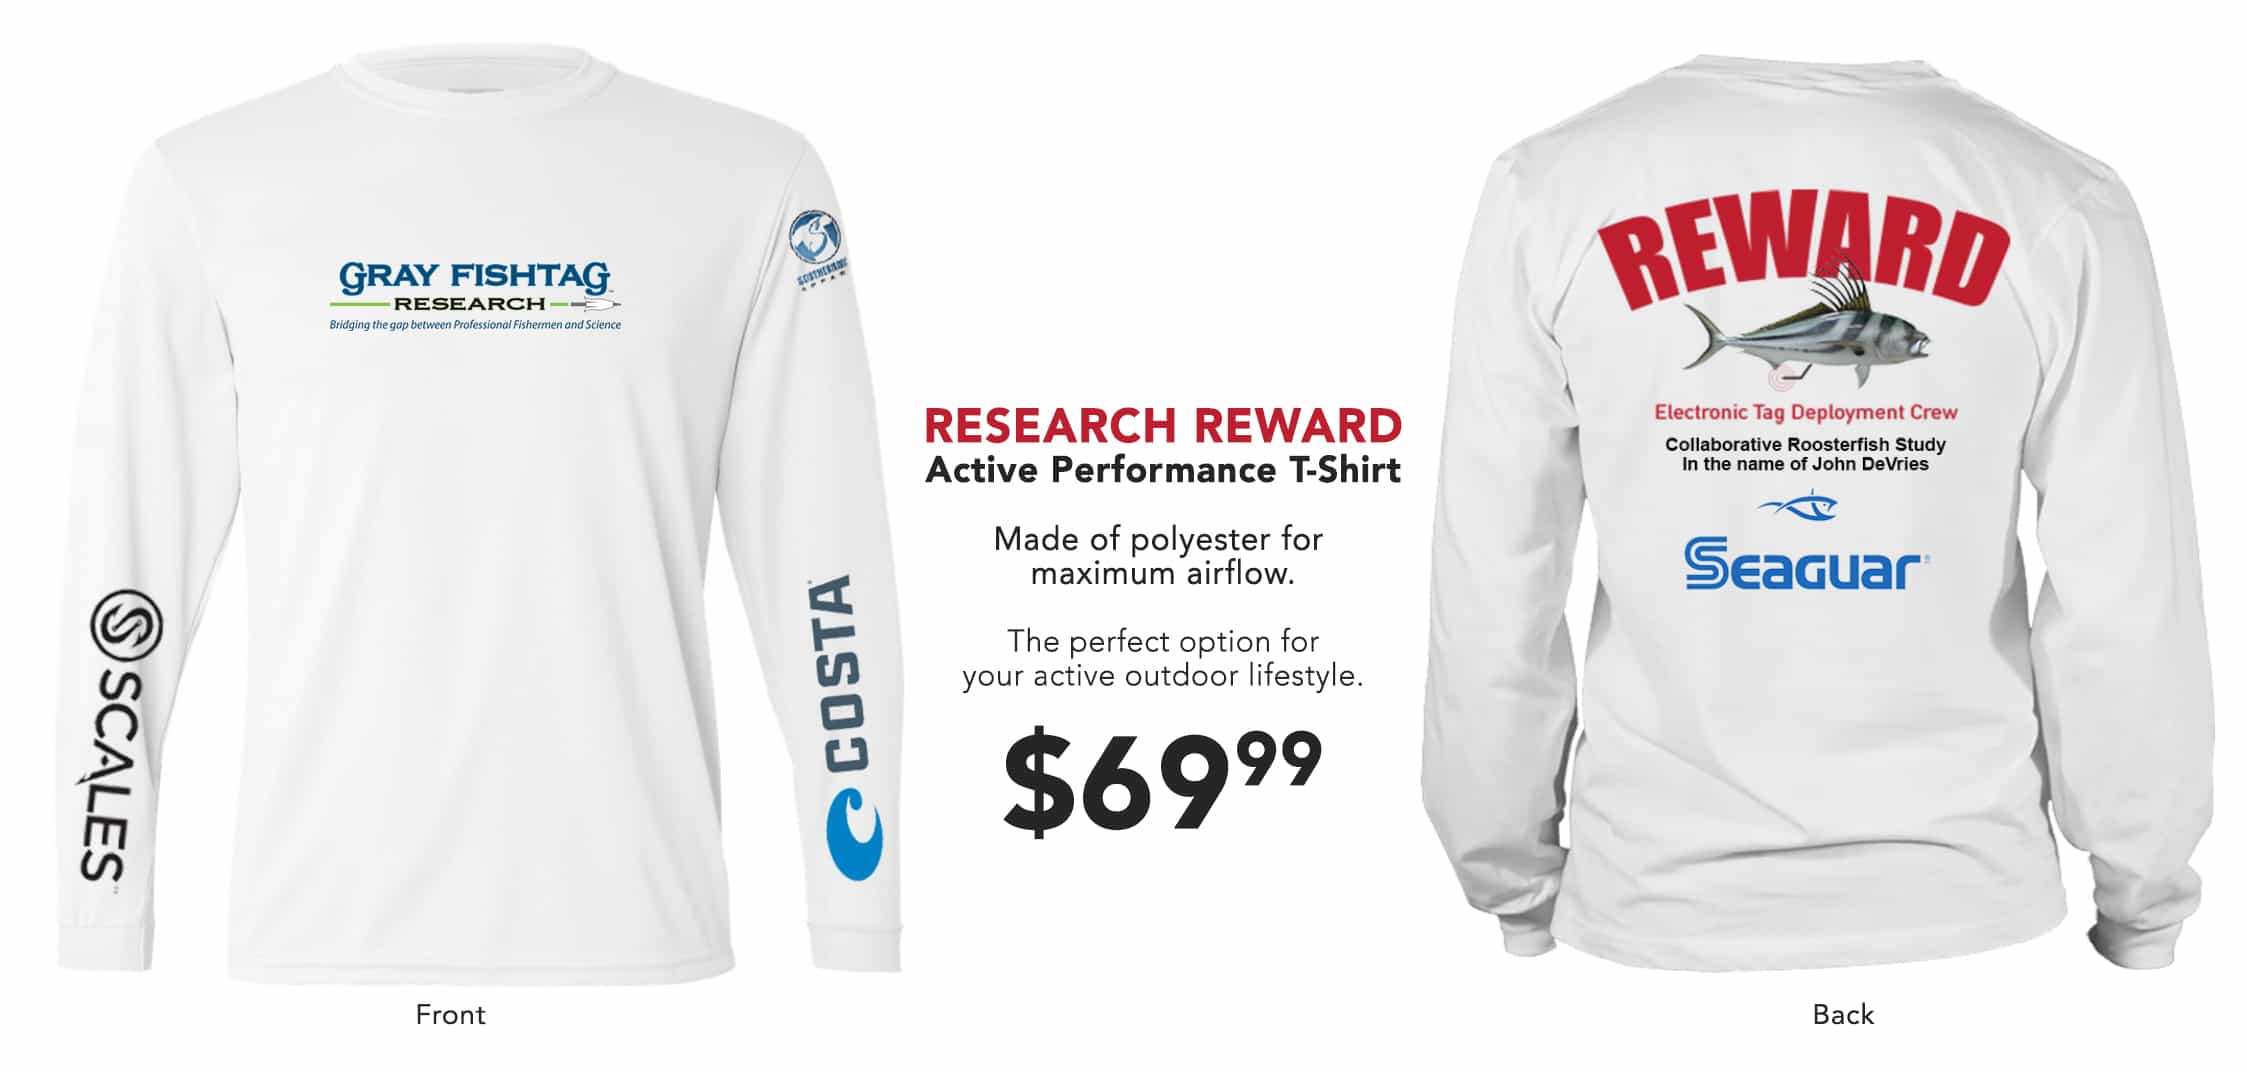 Gray FishTag Research Reward Shirt